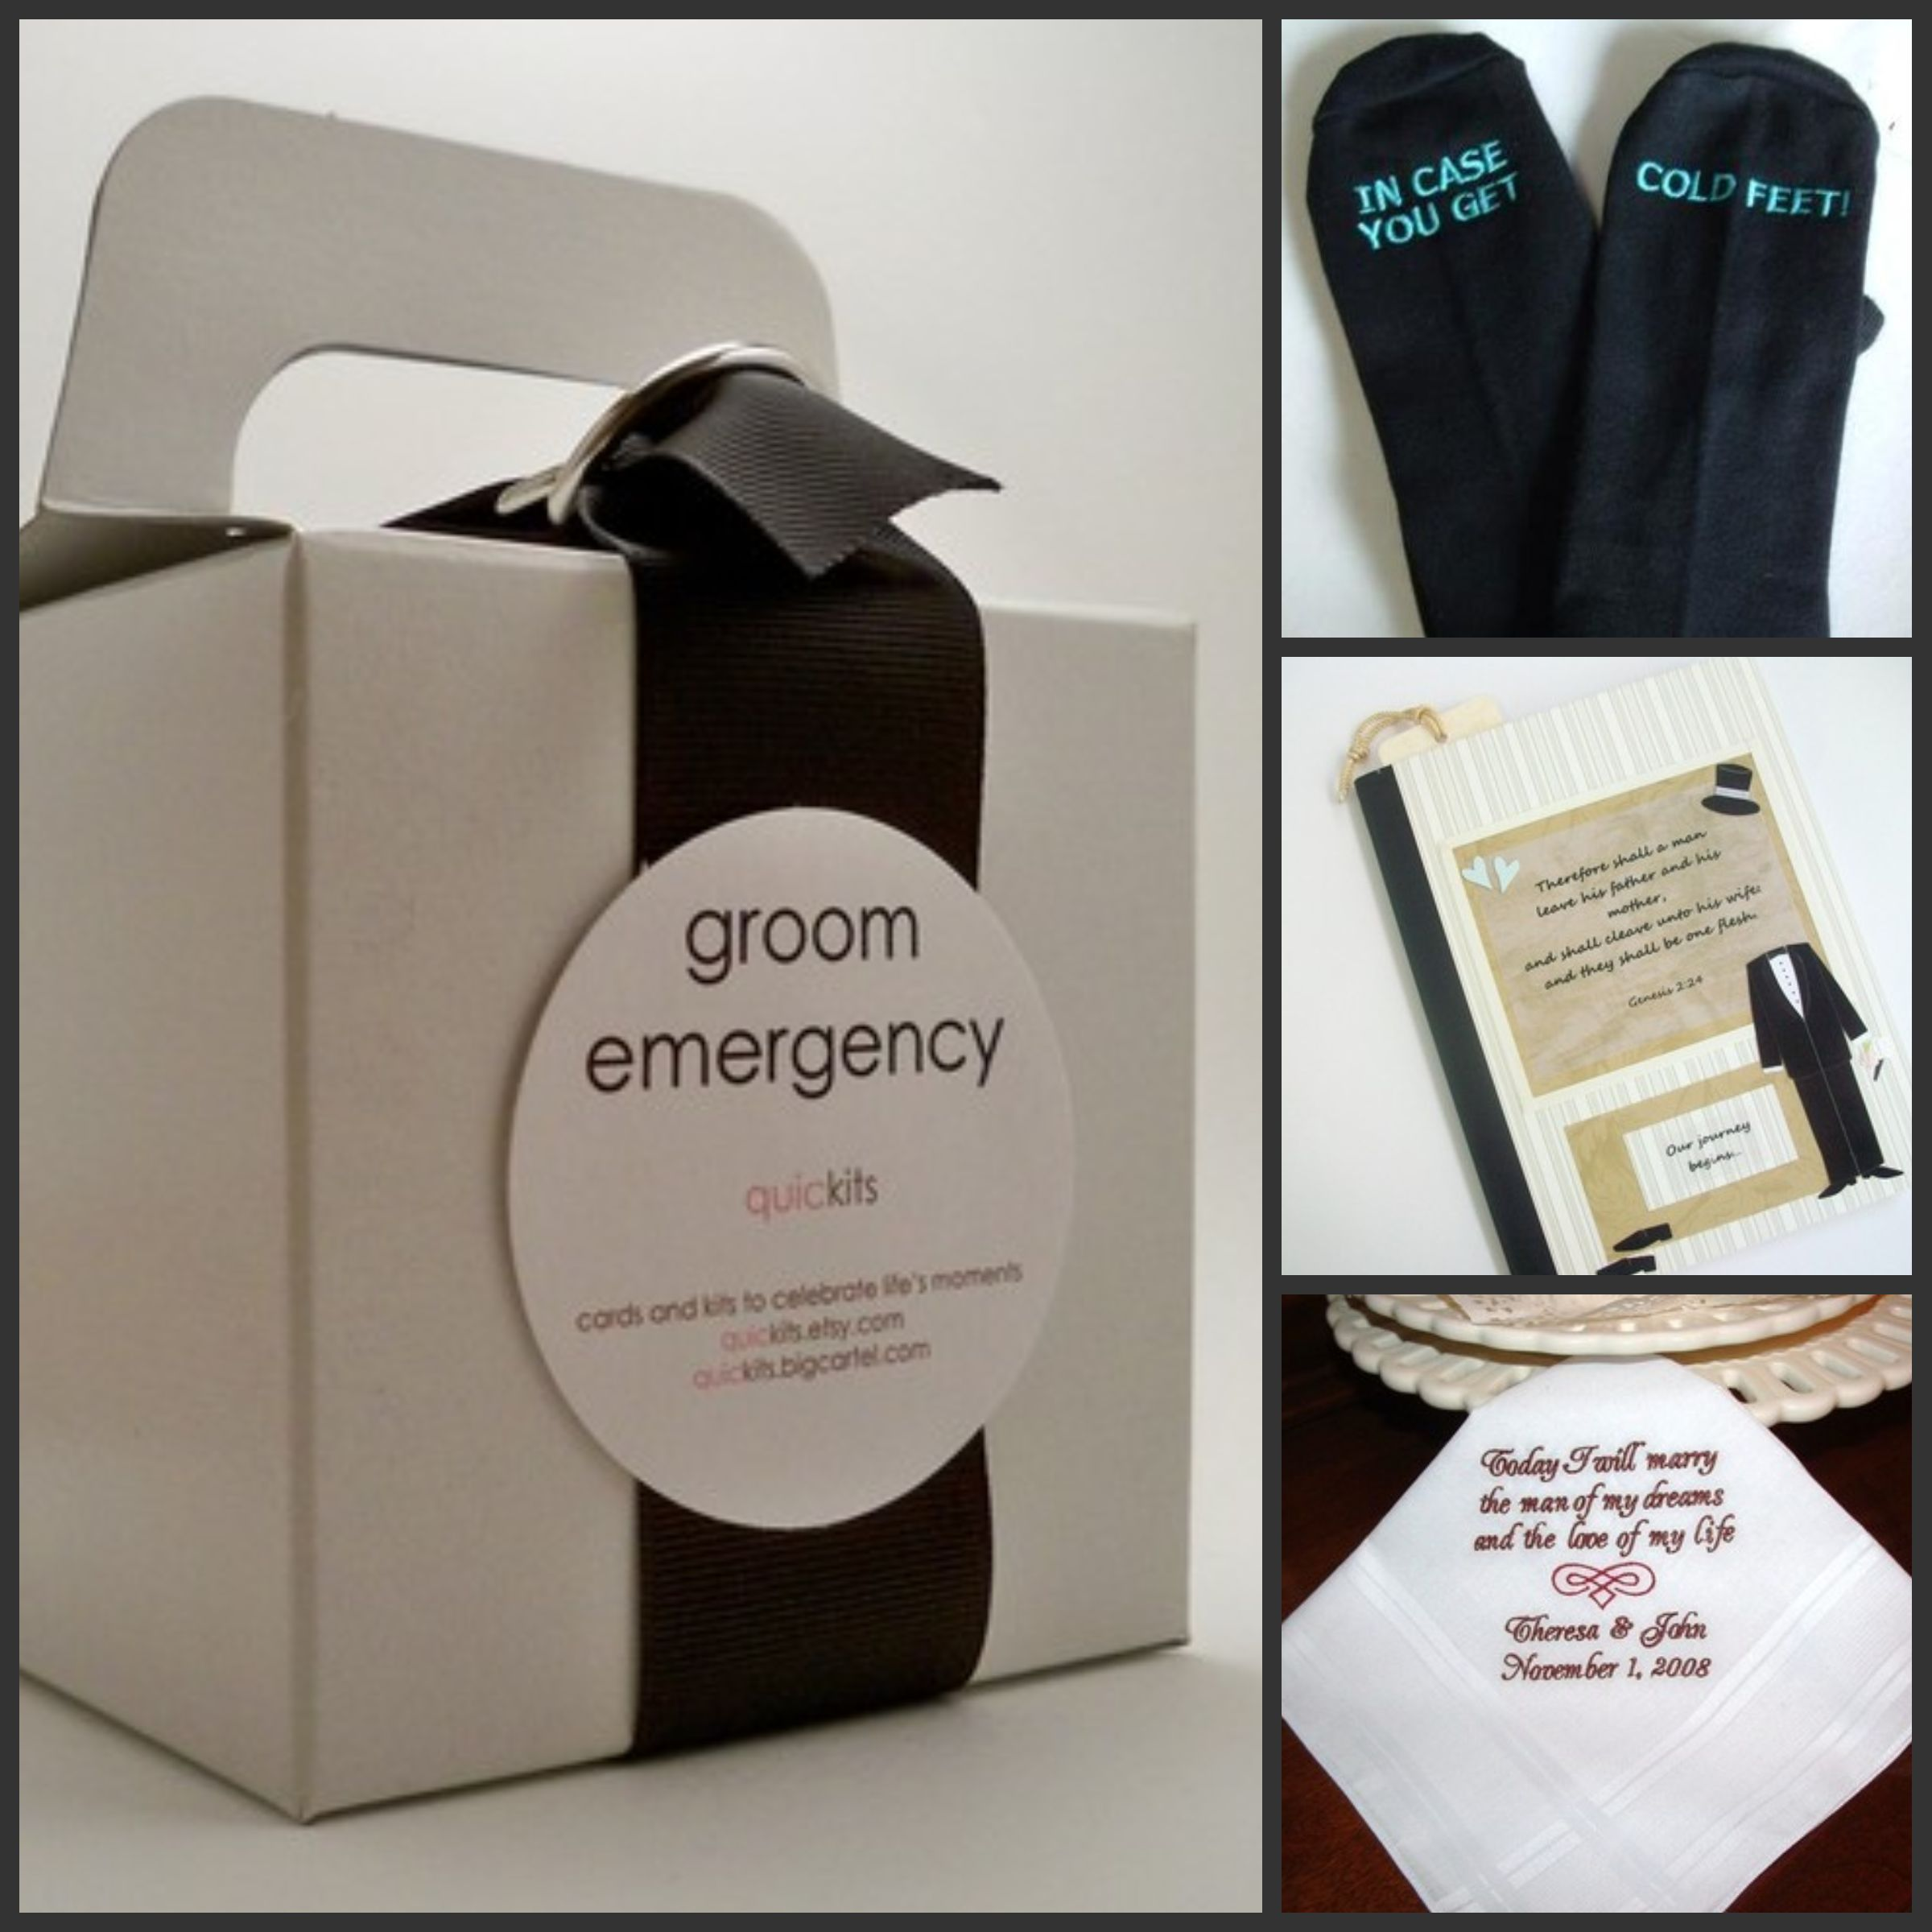 A Wedding Gift For The Groom : personal gifts for your groom clockwise from left groom emergency kit ...